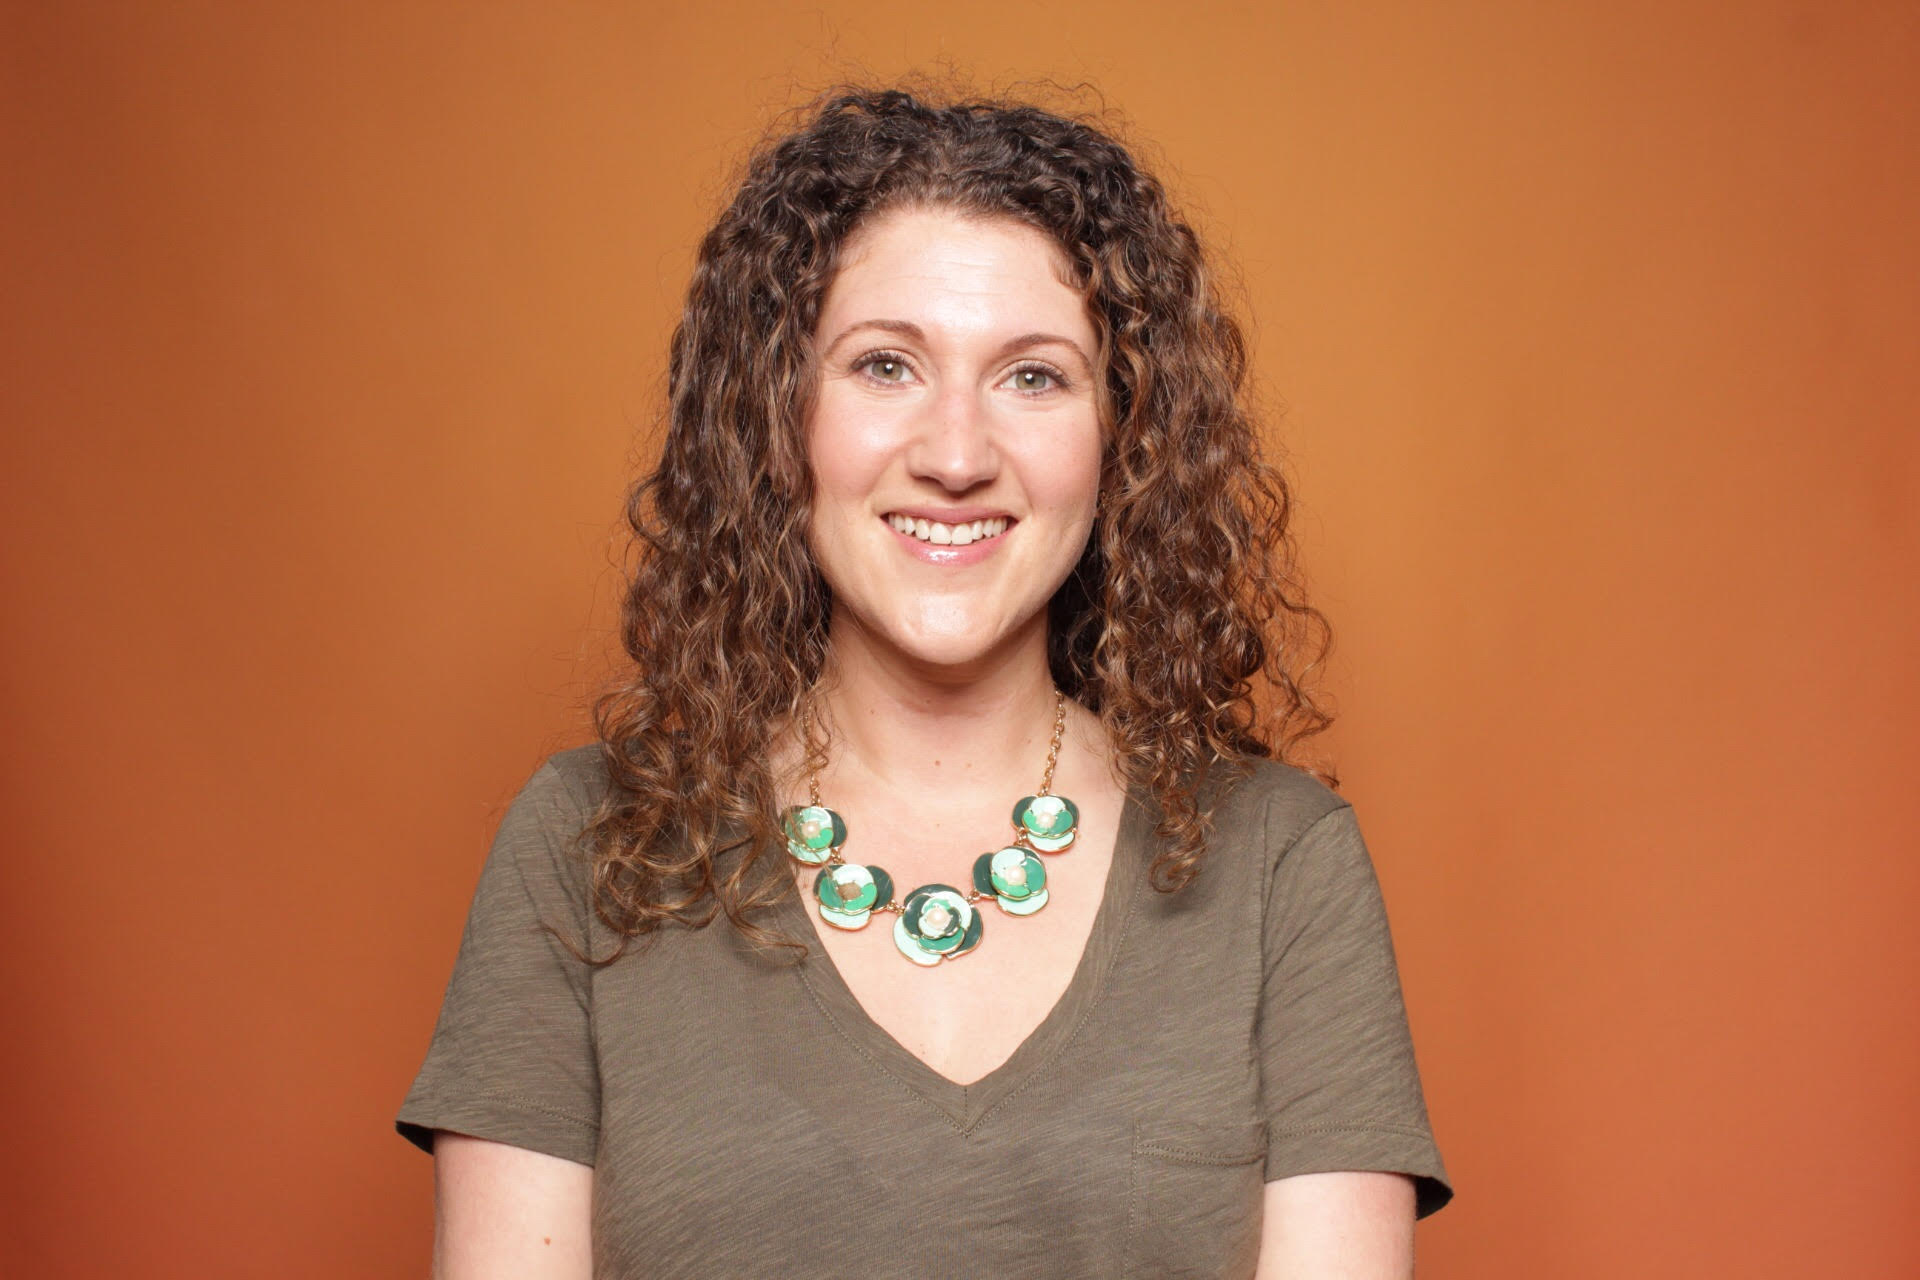 woman-with-curly-brown-hair-green-statement-necklace-smiling